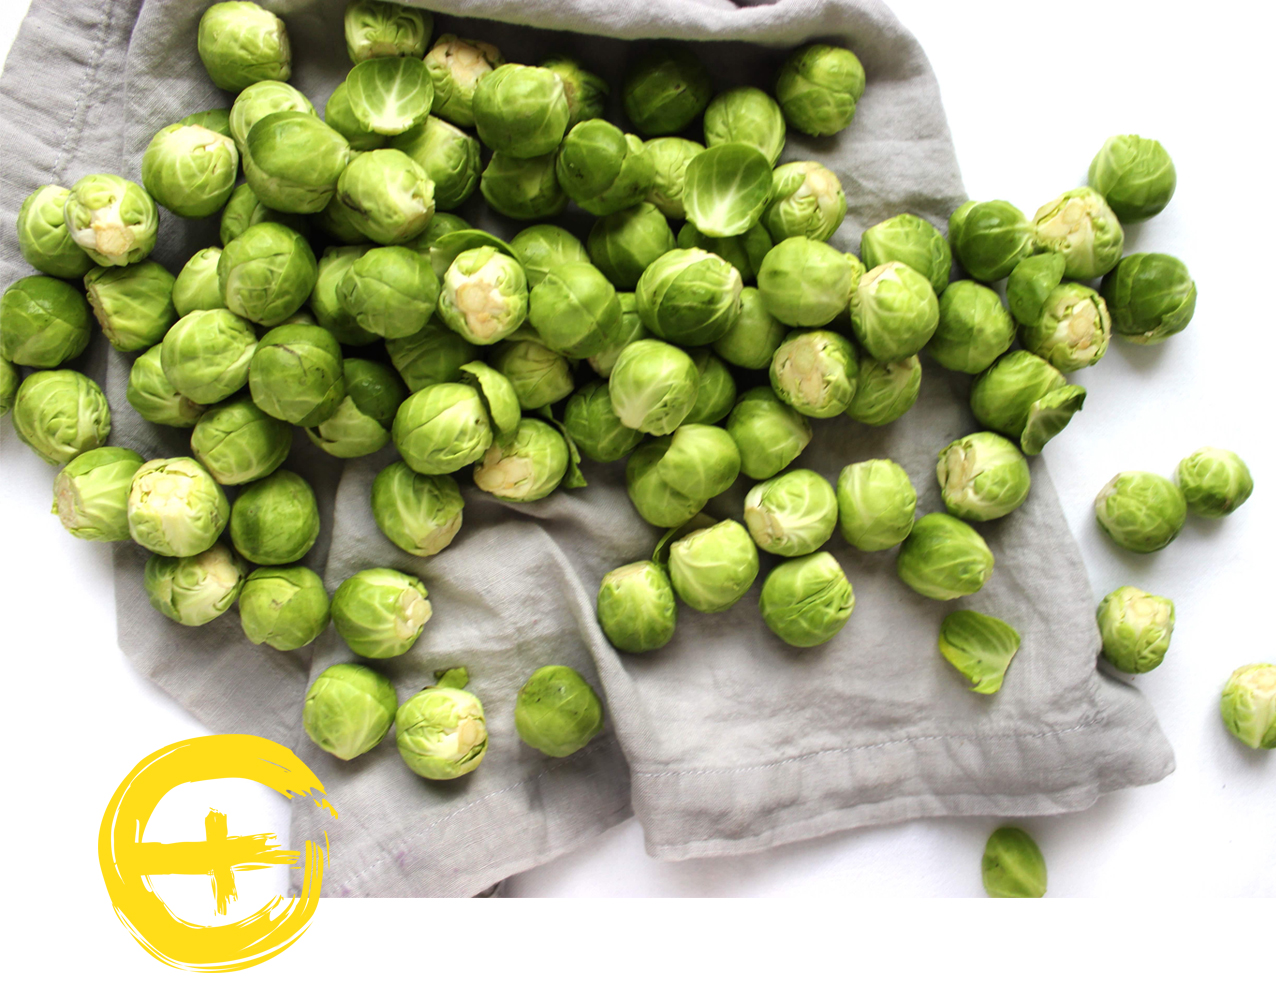 image sprouts.jpg